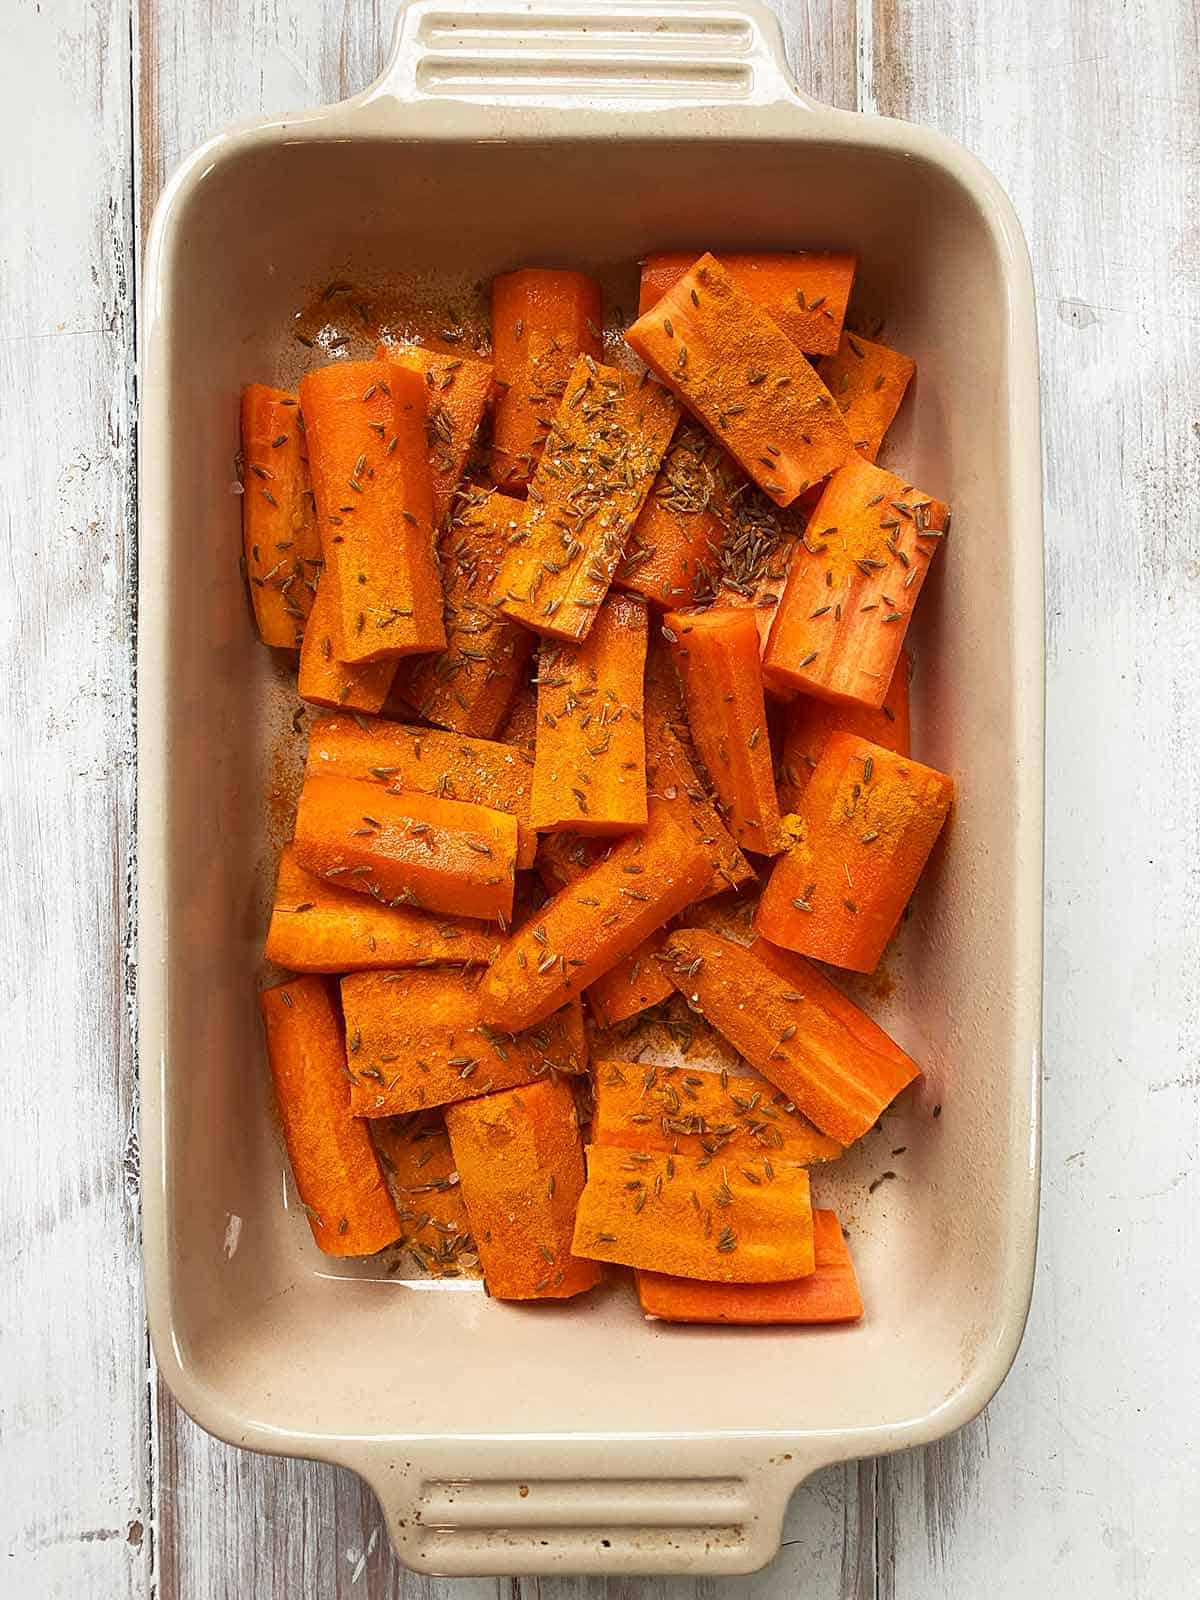 A dish of chopped carrots with cumin seeds